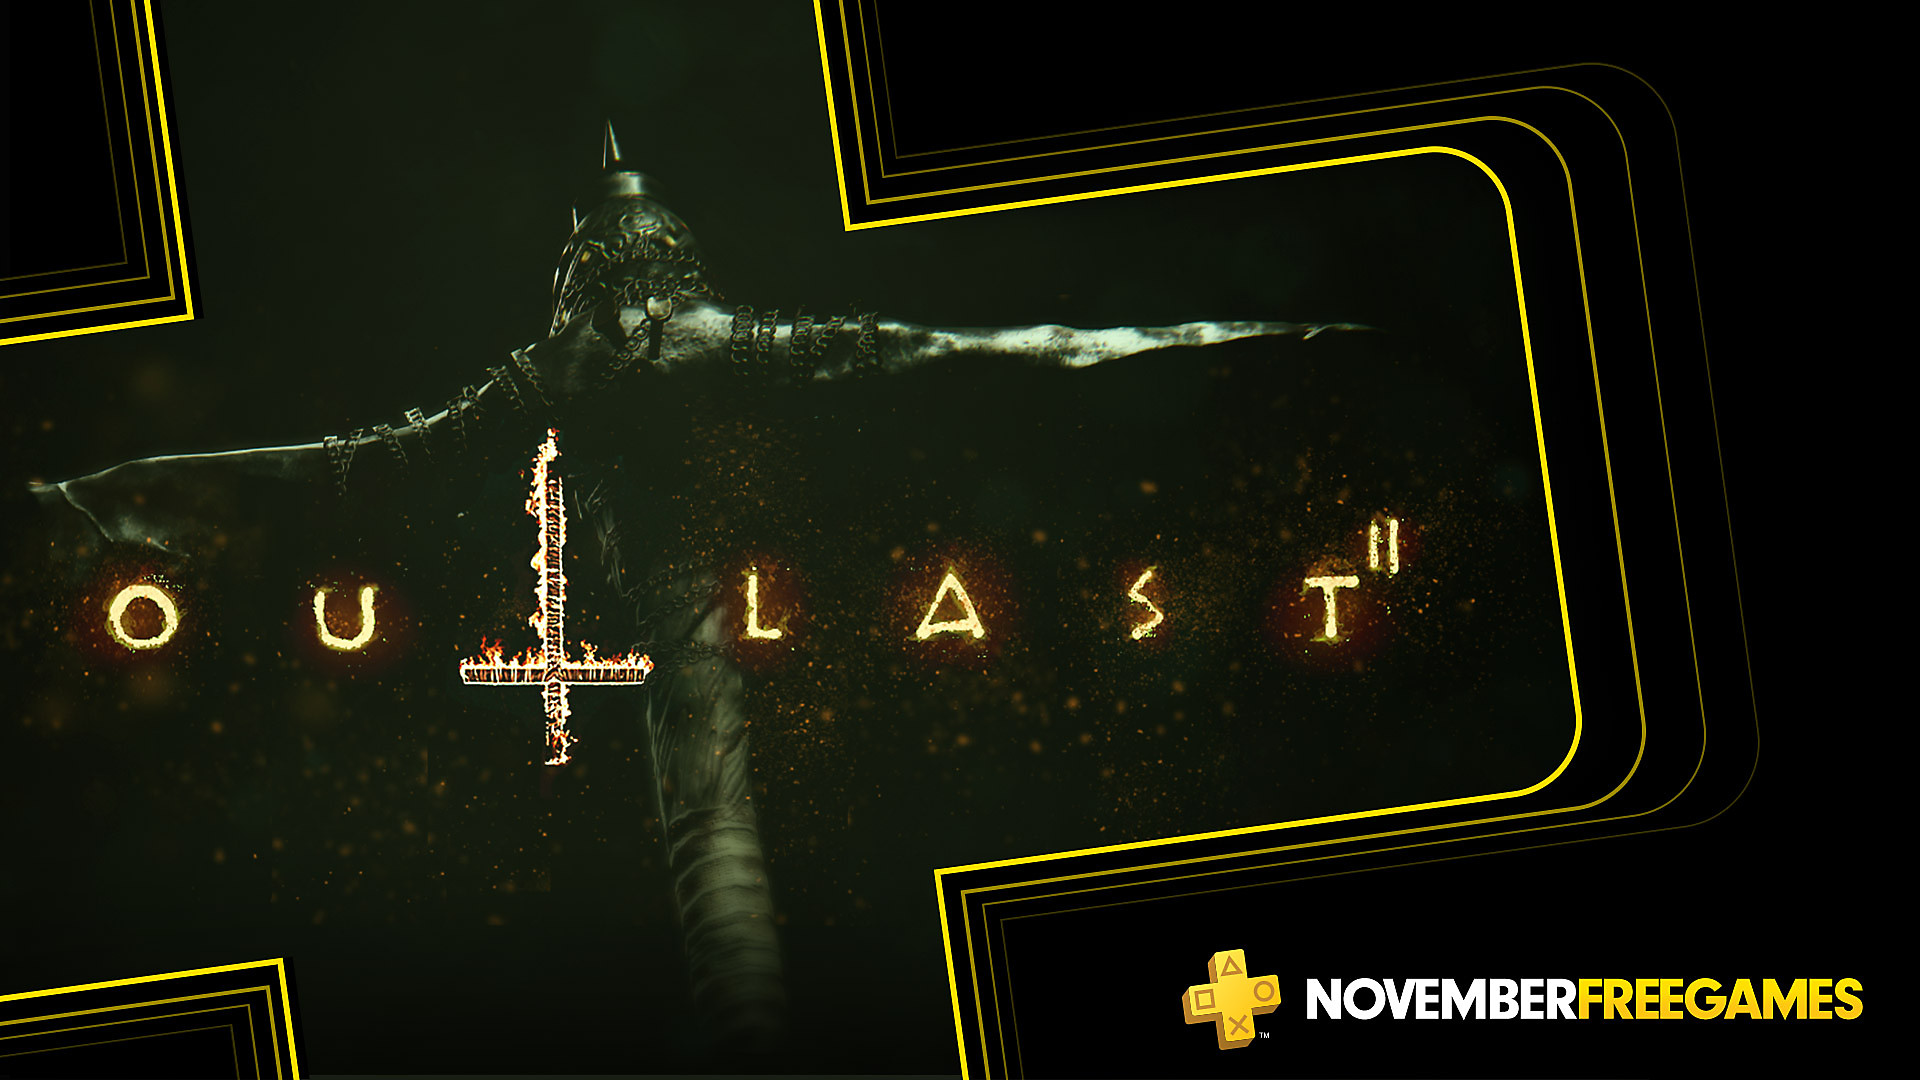 Click here to get Outlast 2 free from the PlayStation Store for PlayStation Plus members